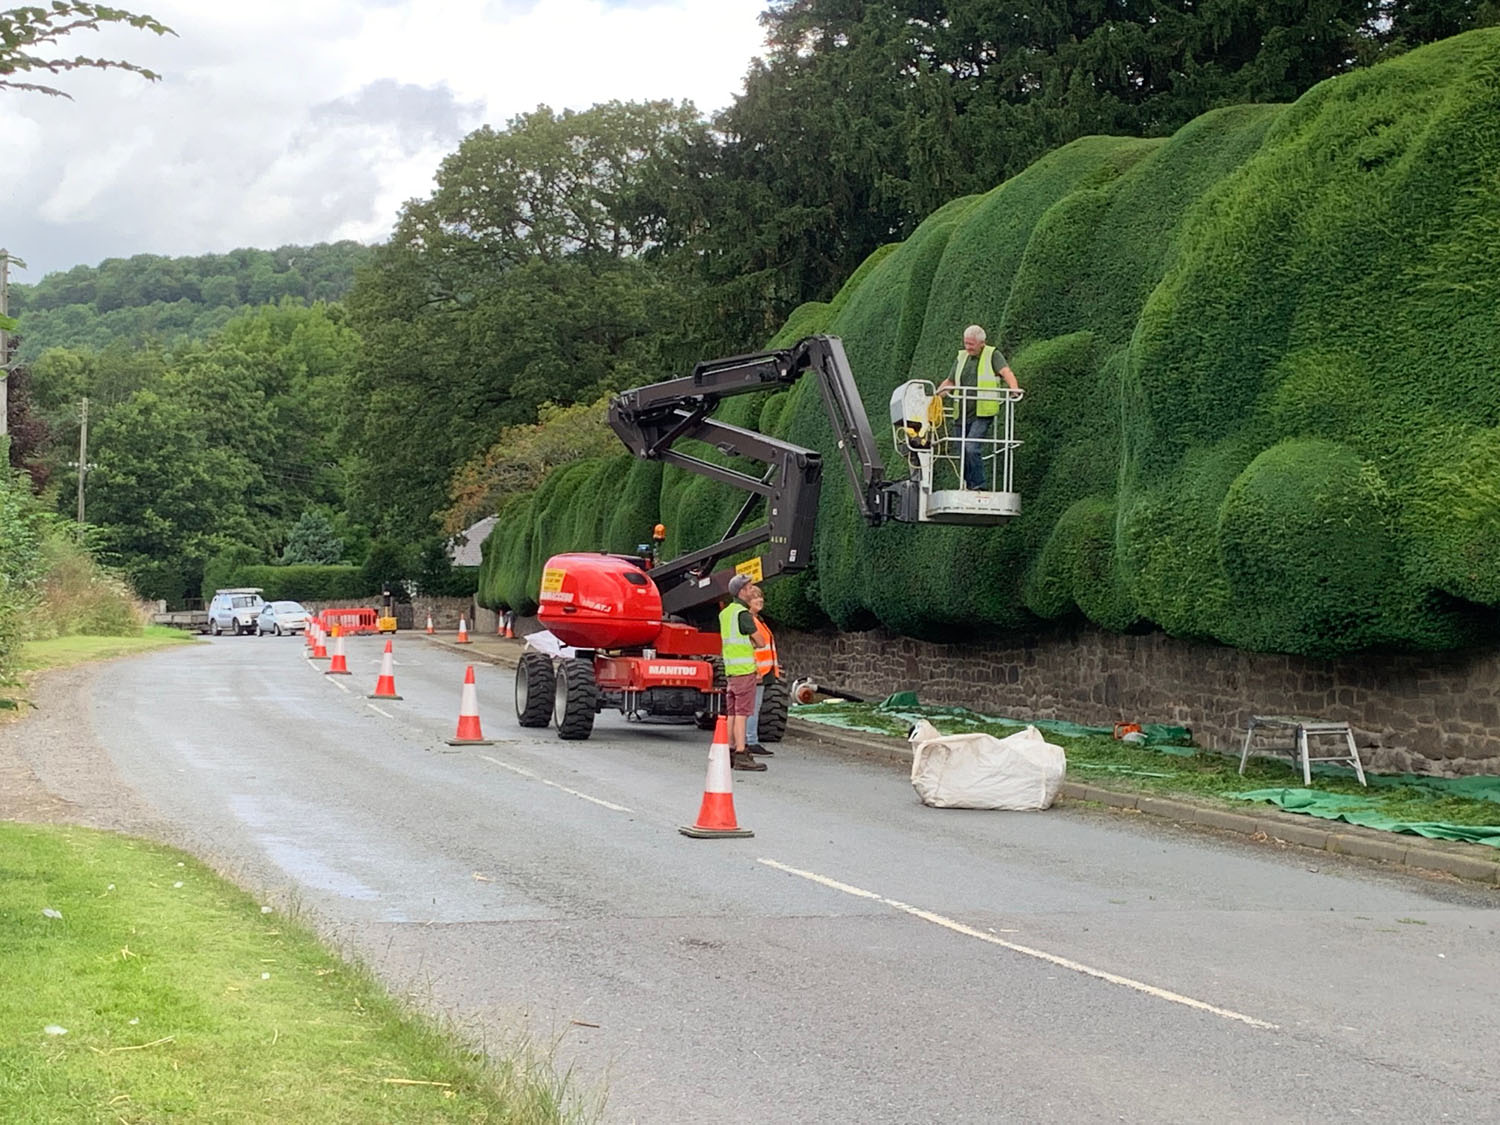 Clipping the hedge.